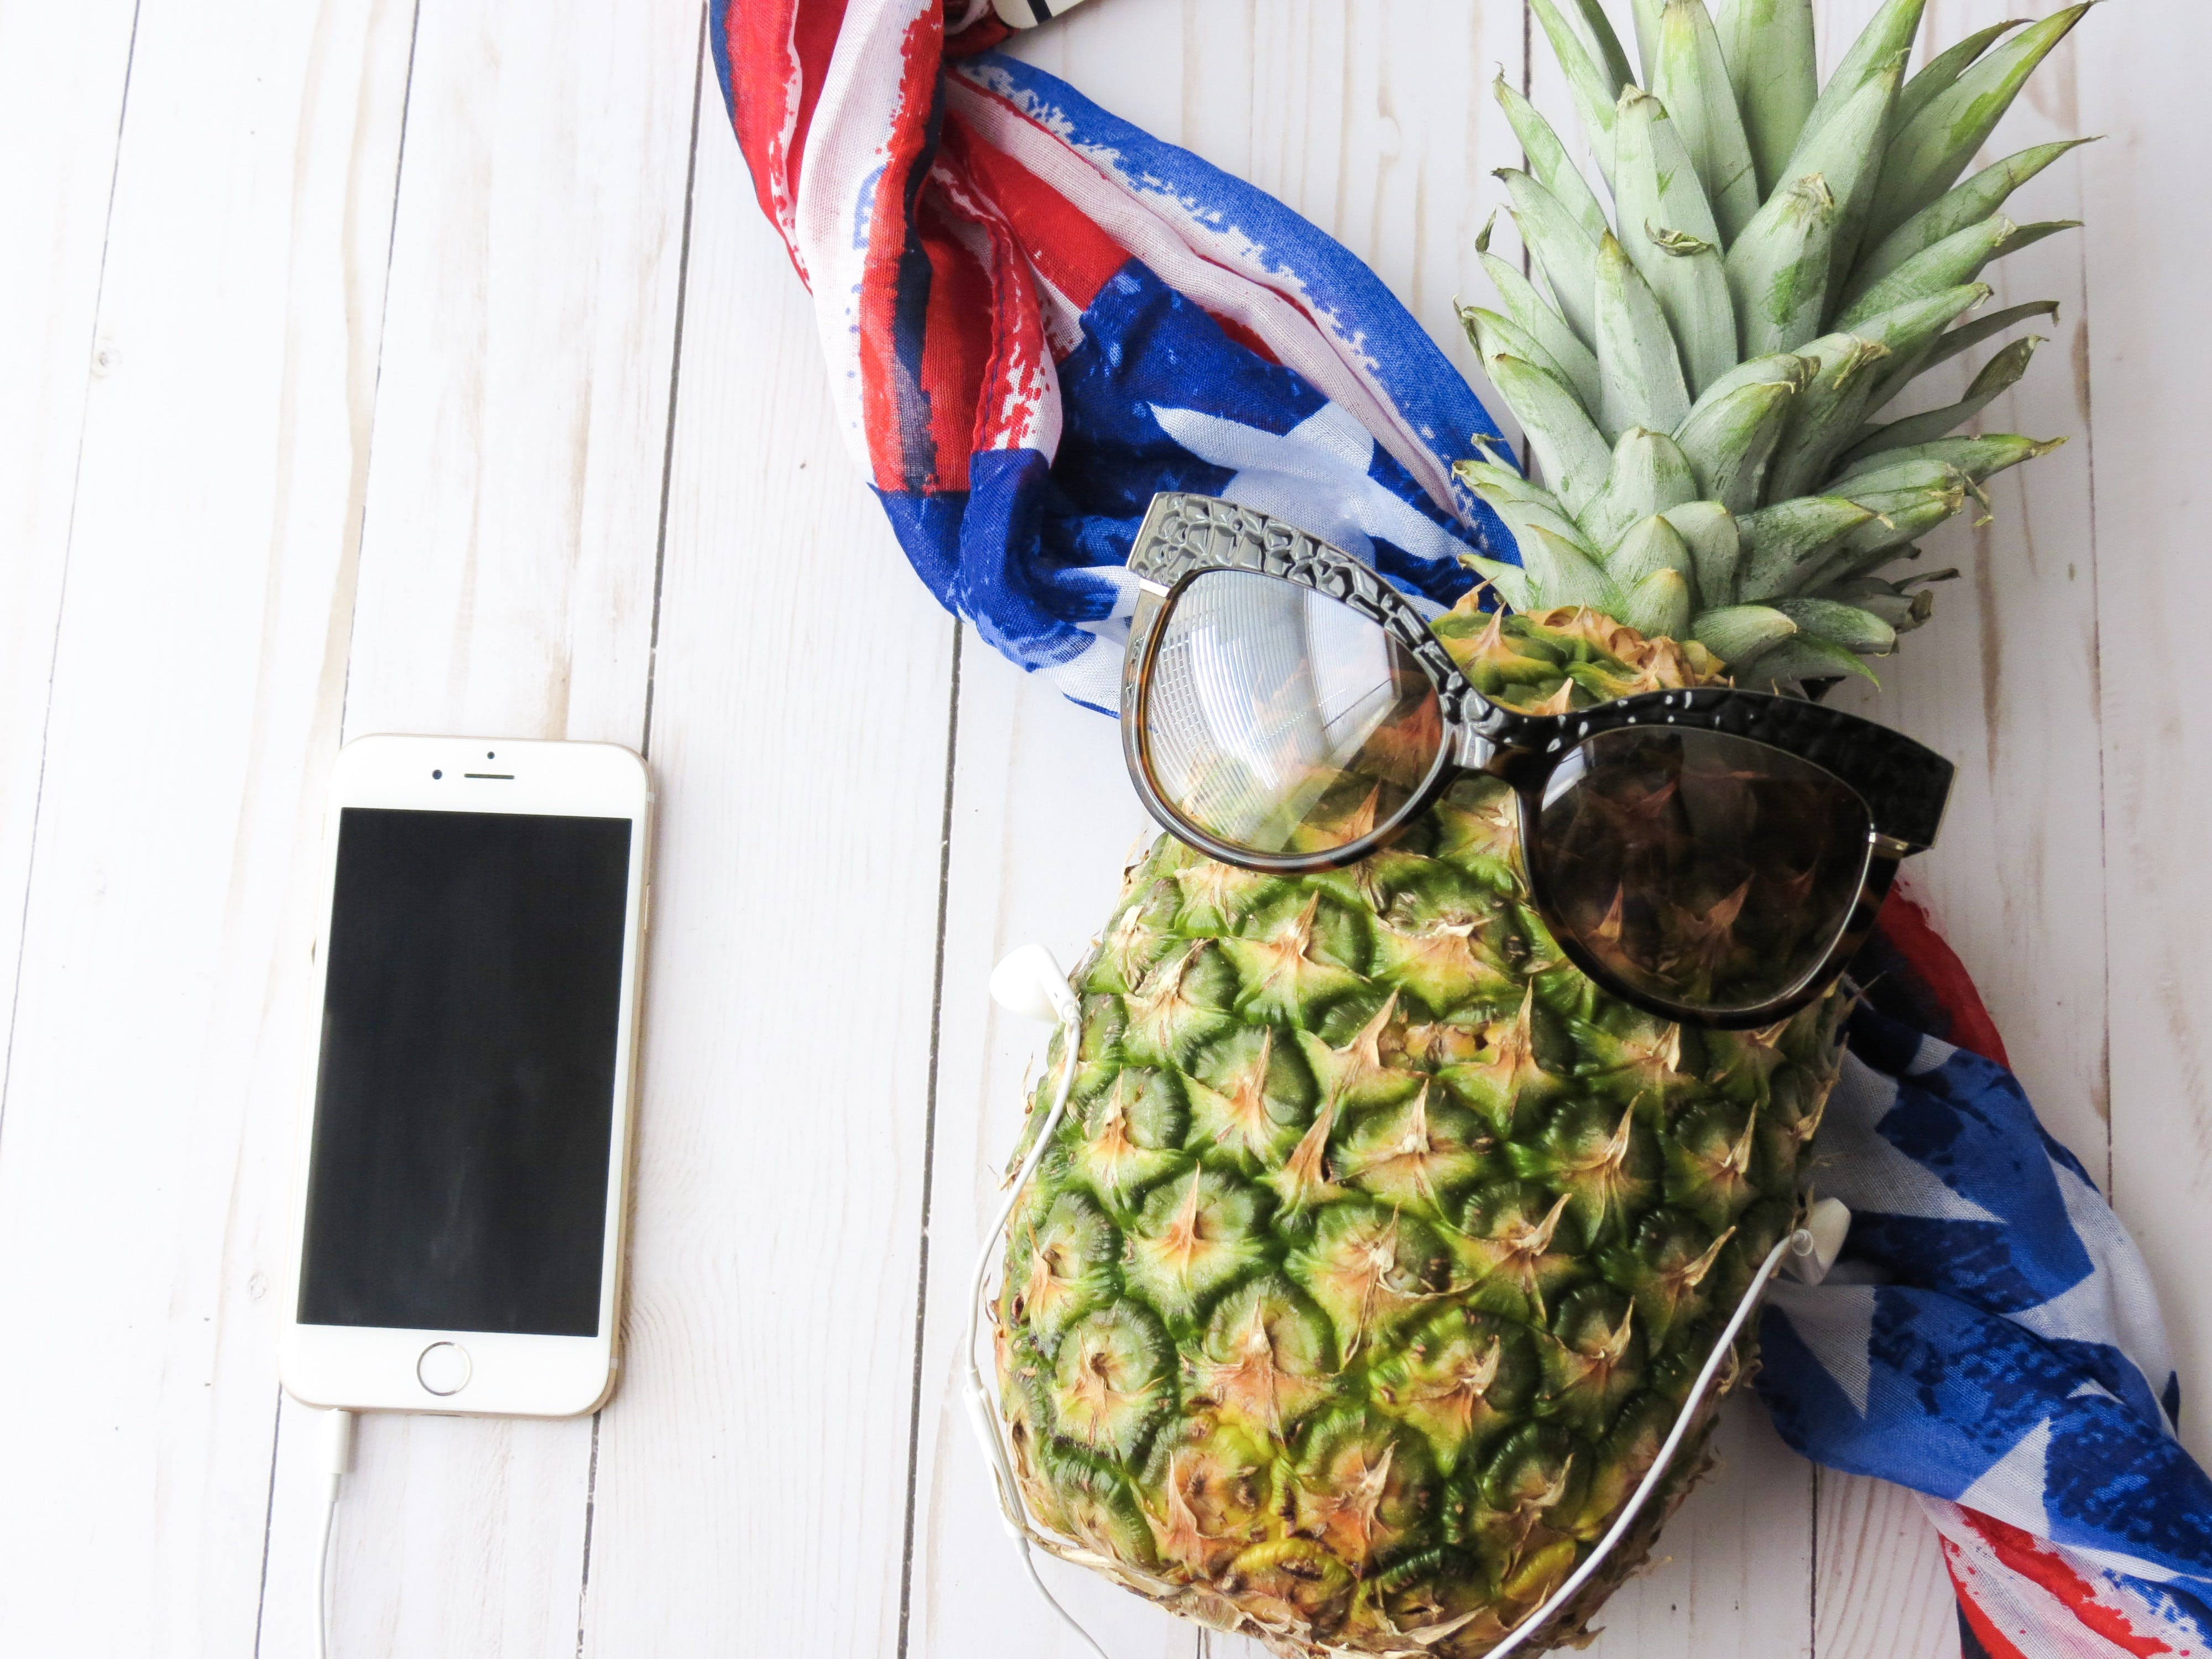 Ripe Pineapple With Brown Sunglasses Near Gold Iphone 6 on White Surface